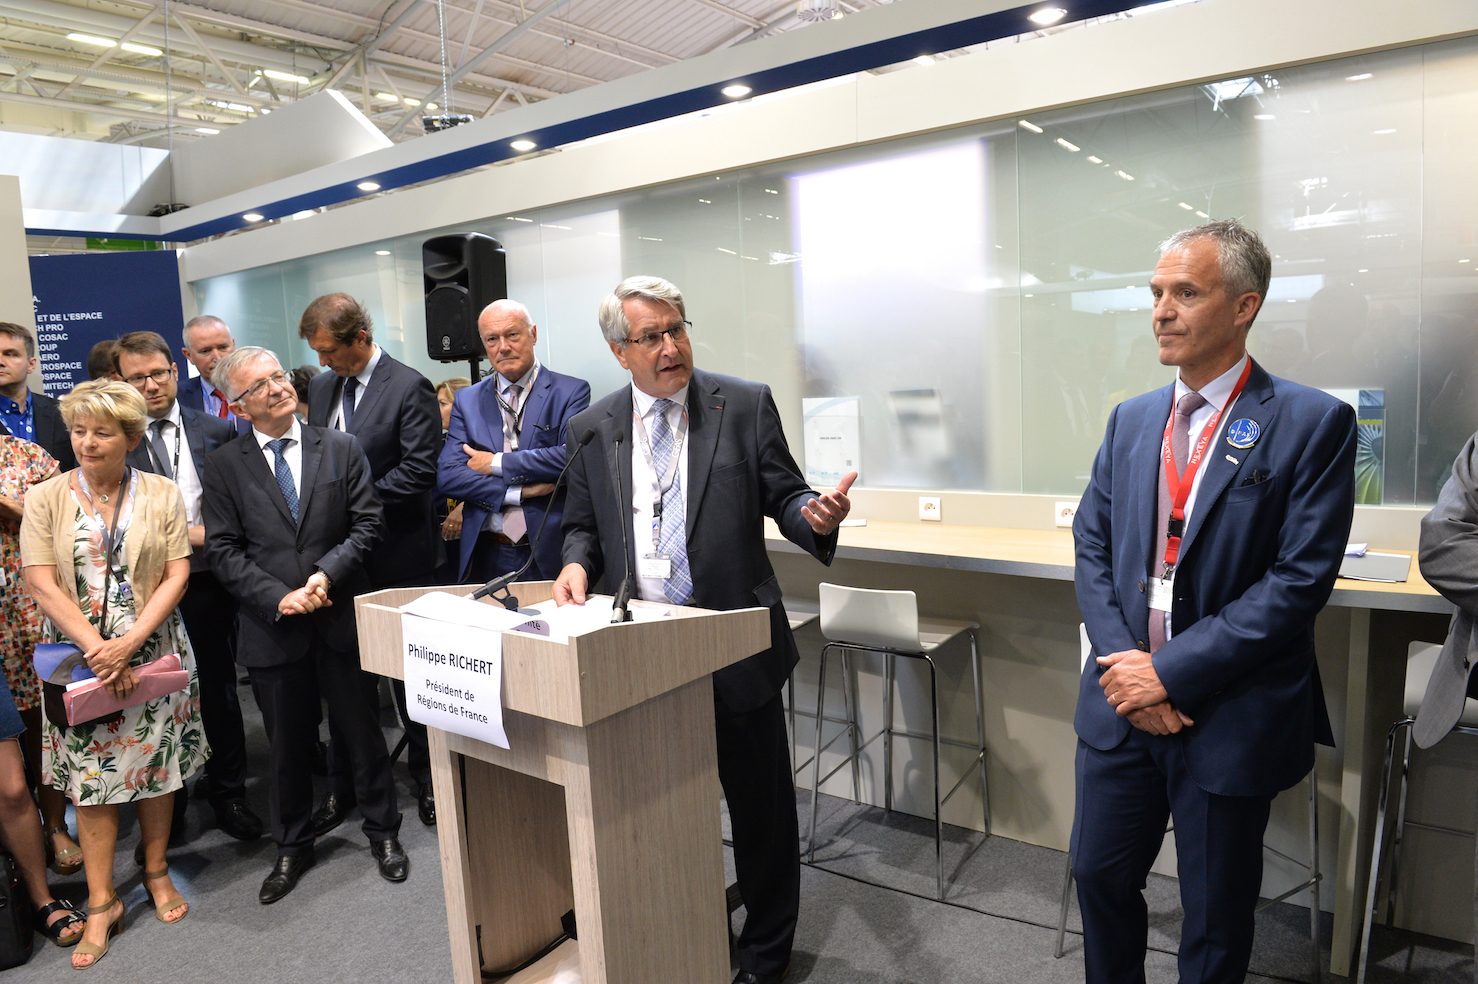 regions, France, aeronautique, industrie, territoire, emploi, performance, phase 2, programme, le bourget, salon, signature, economie, GIFAS, Philippe Richert, president